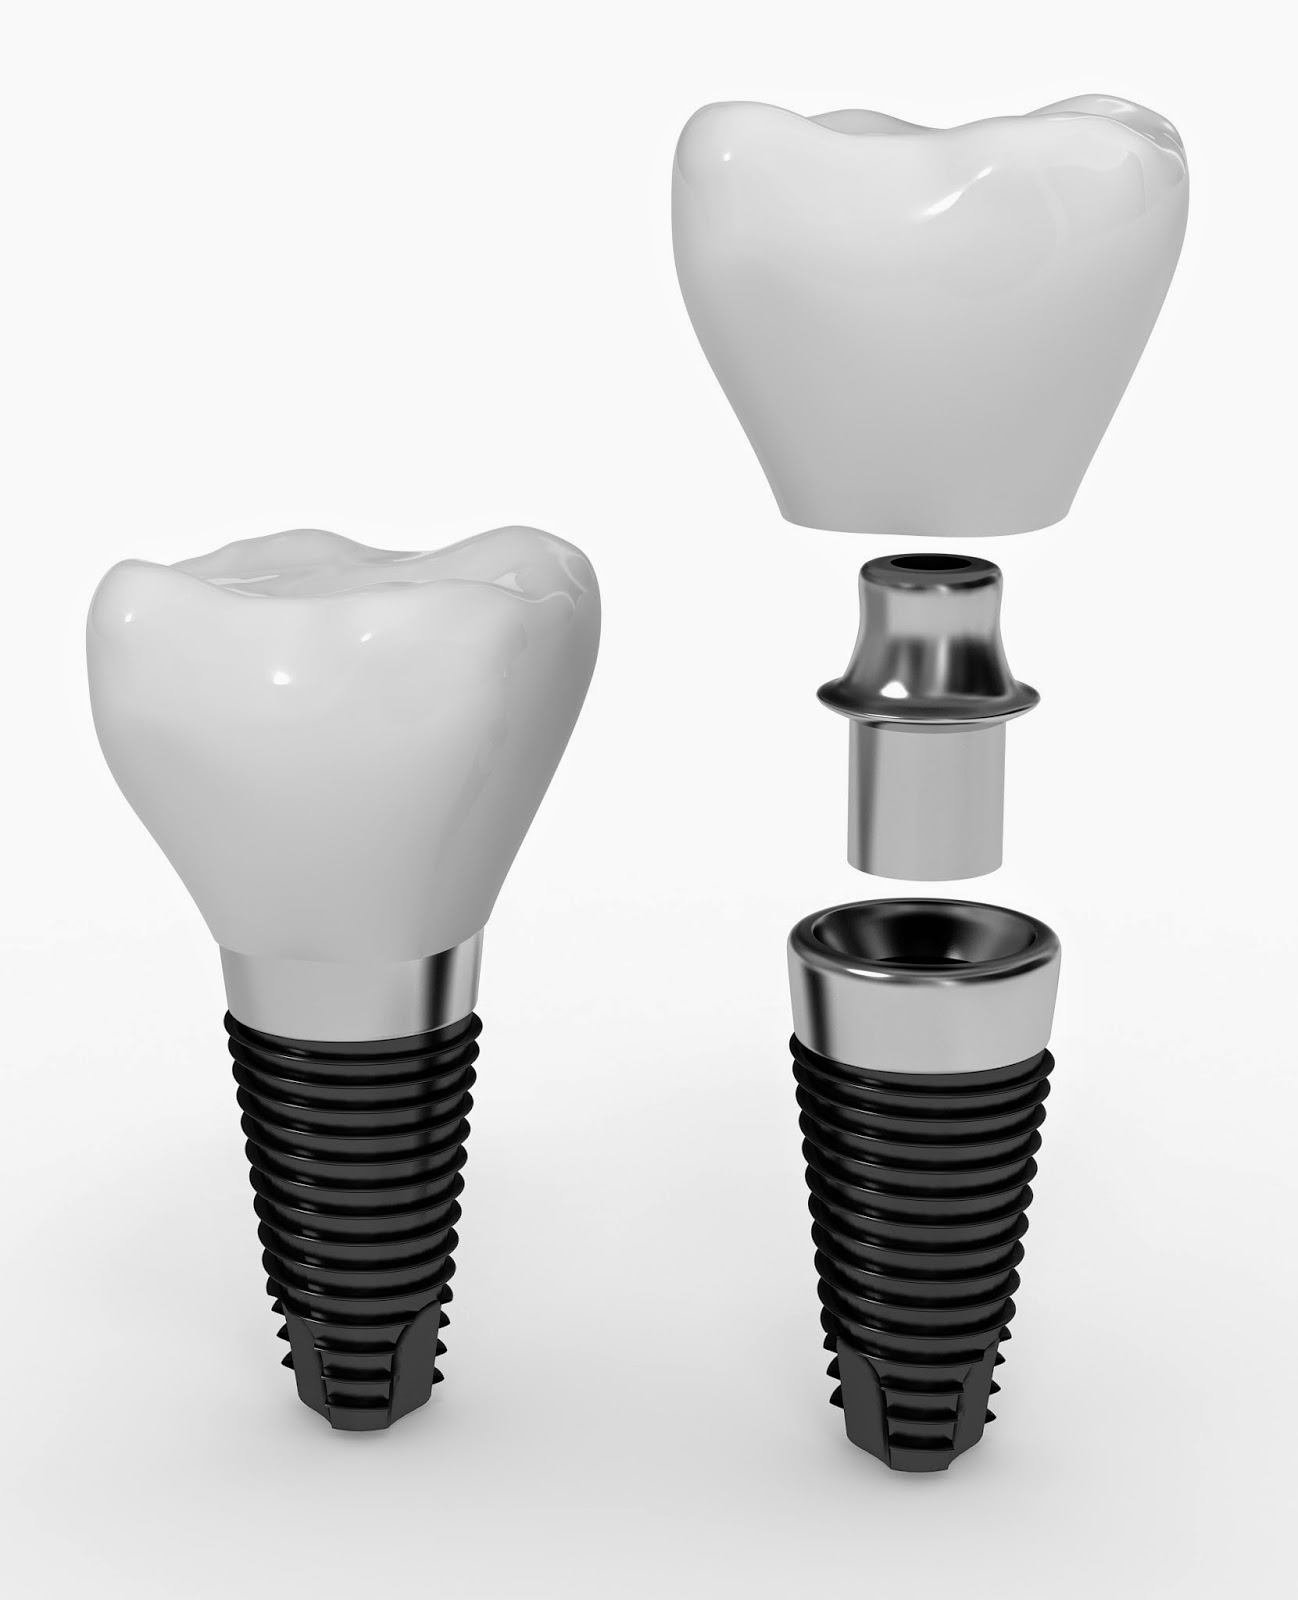 implant, abutment, implant abutment, crown, jamnagar implant, jamnagar dental, jamnagar dentist